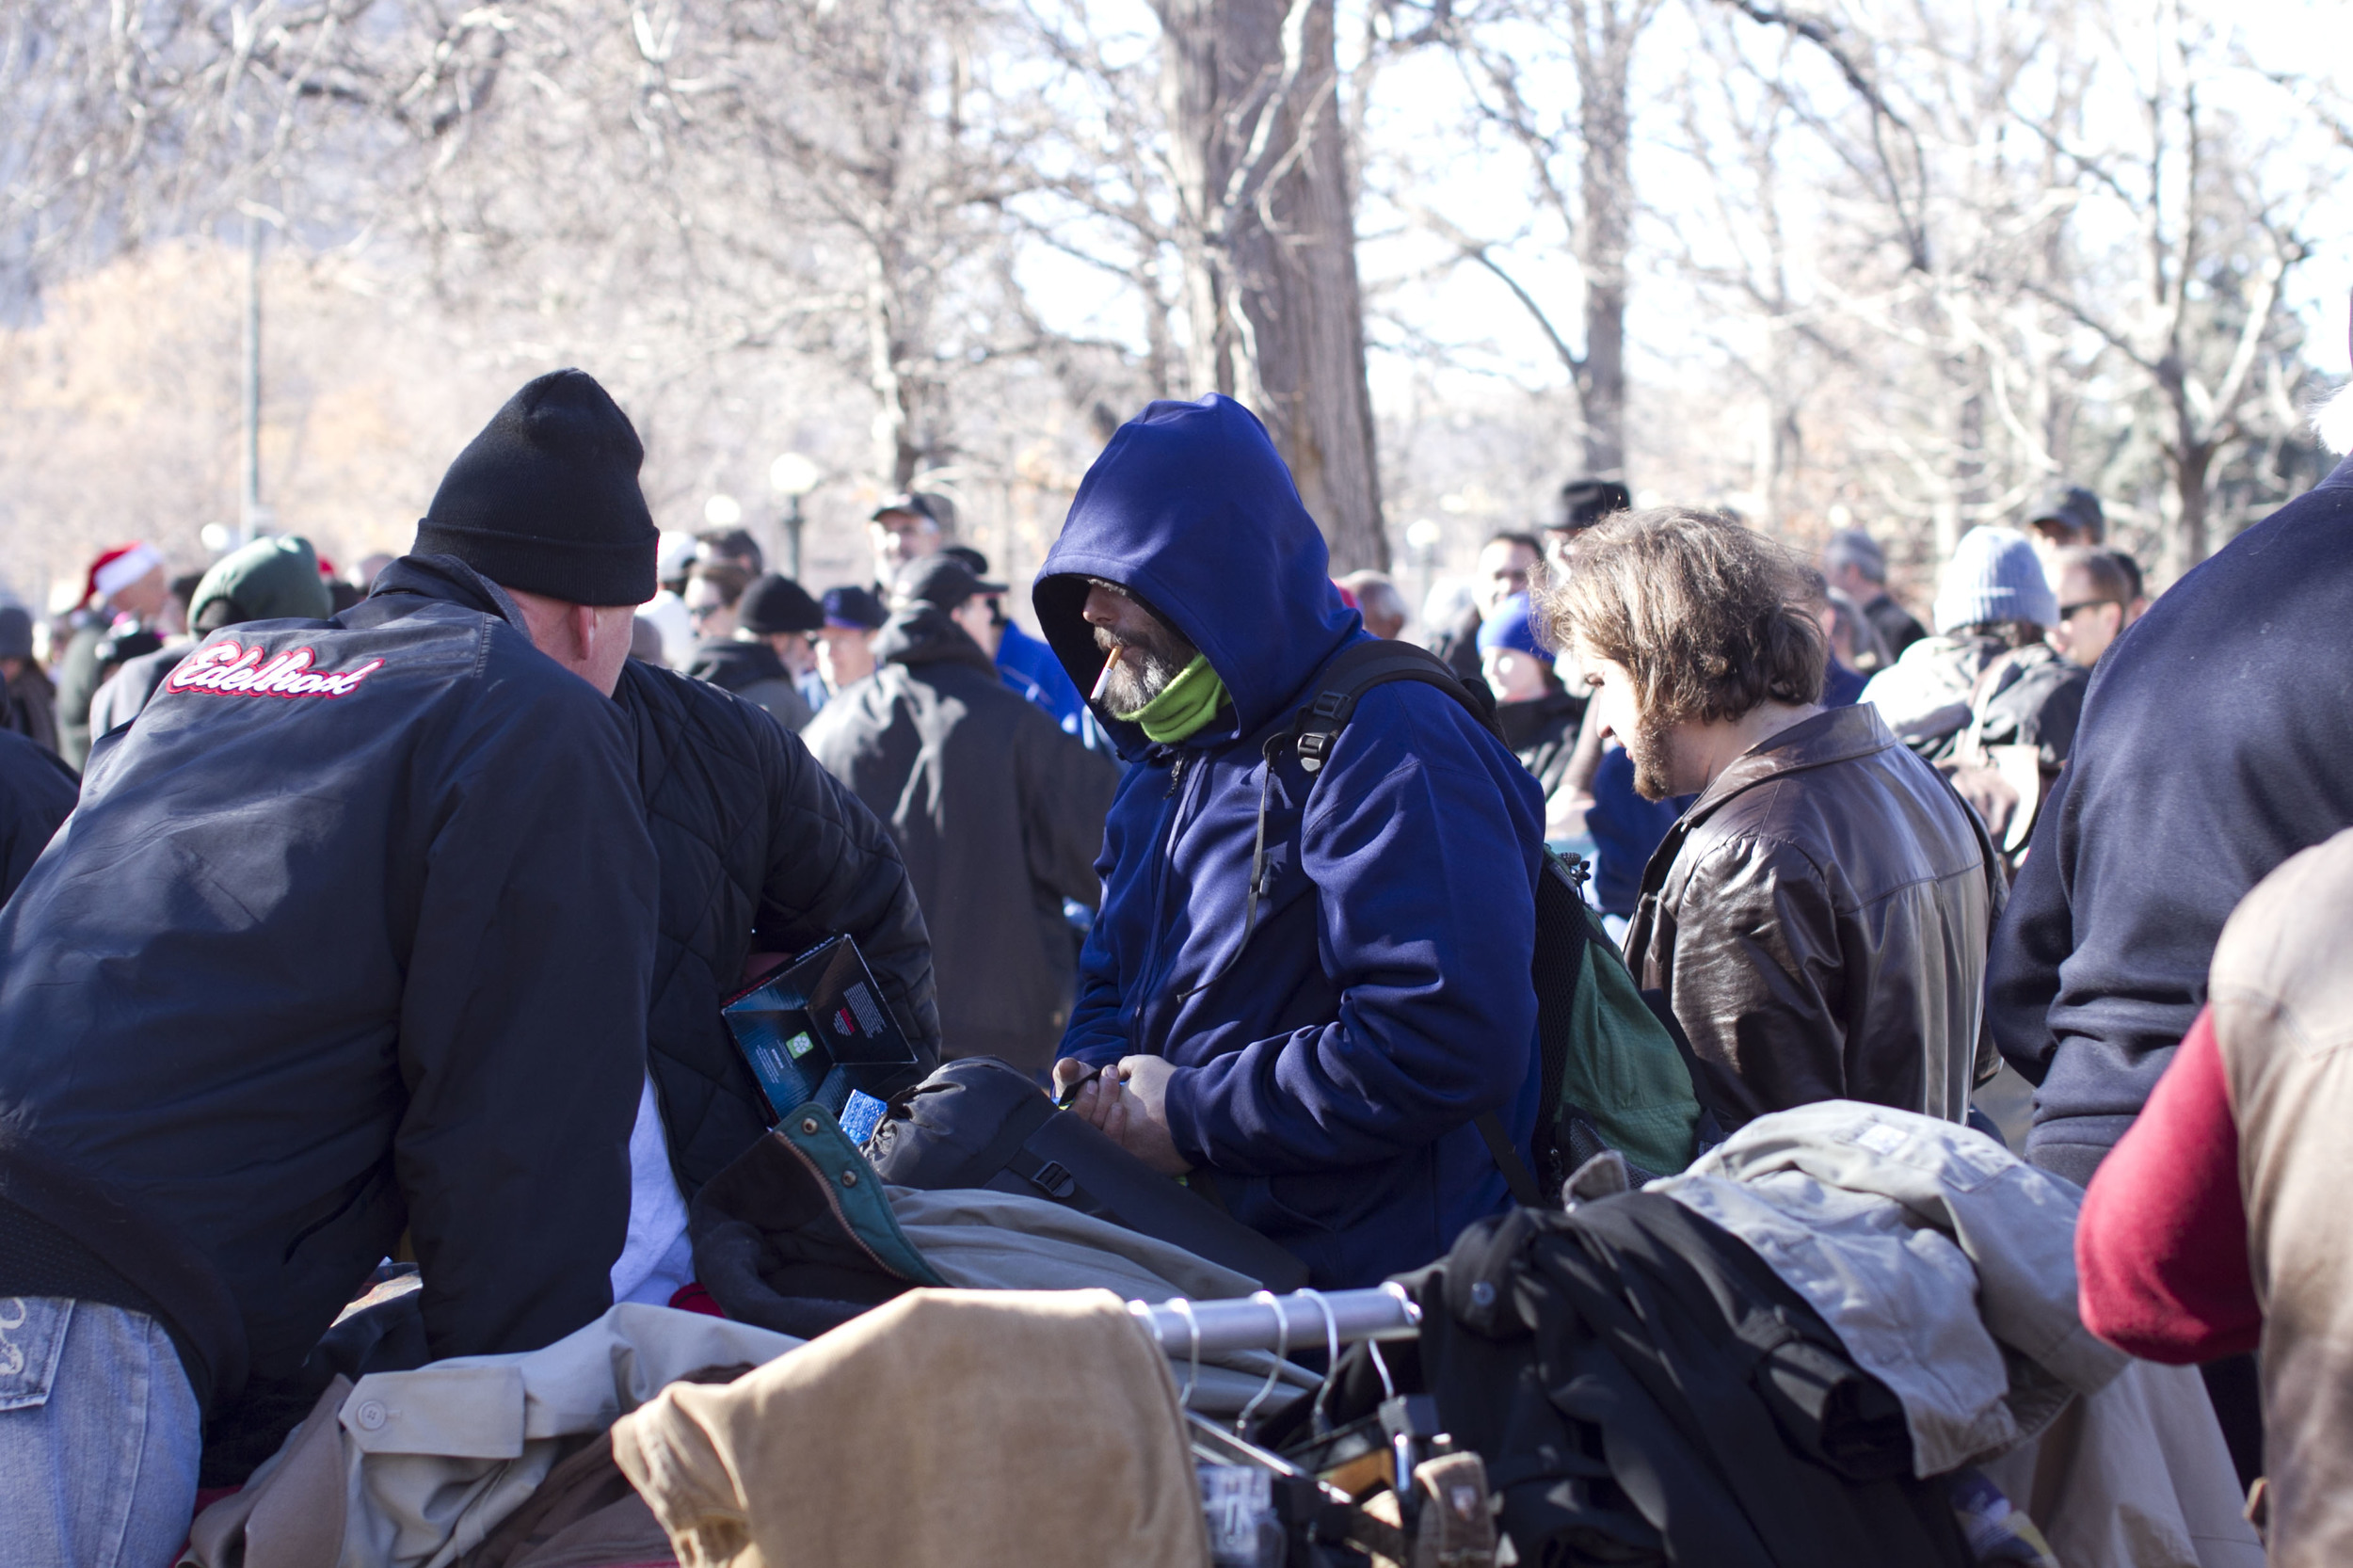 And I spent Christmas with my homeless brothers and sisters in the centre of Denver.